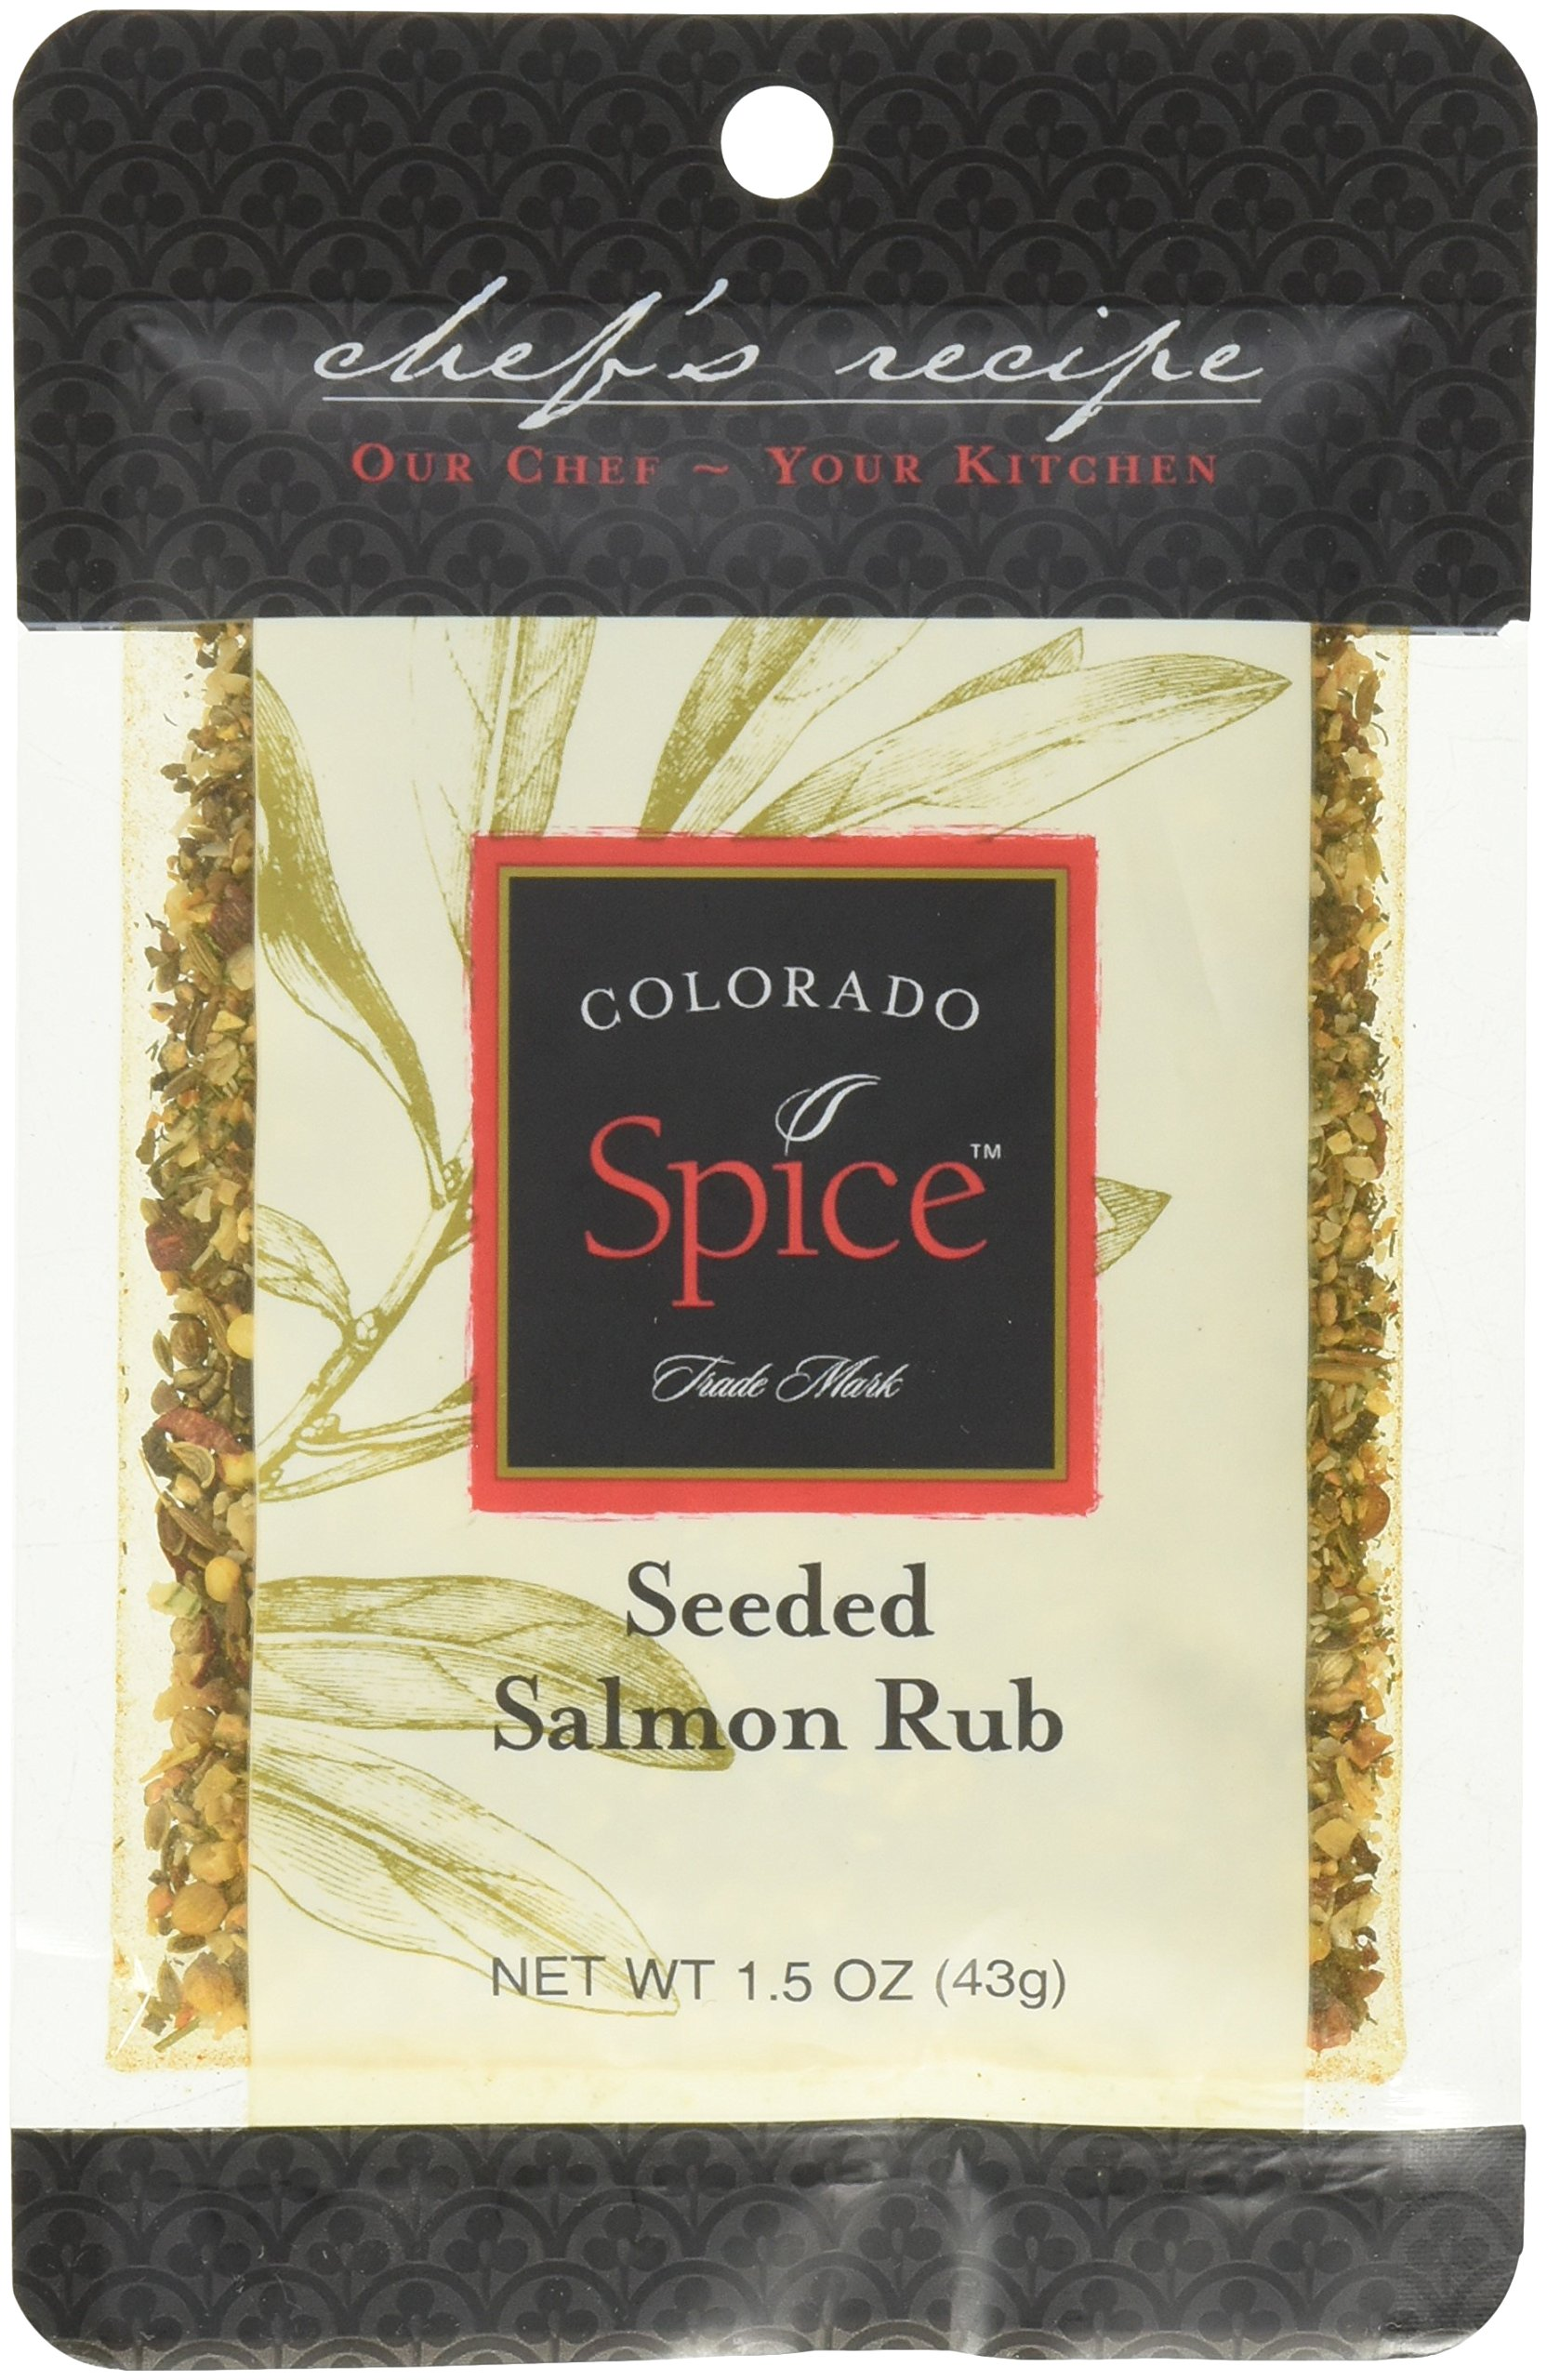 Colorado Spice Seeded Salmon Rub 1.5 ounce packet (Pack of 12)